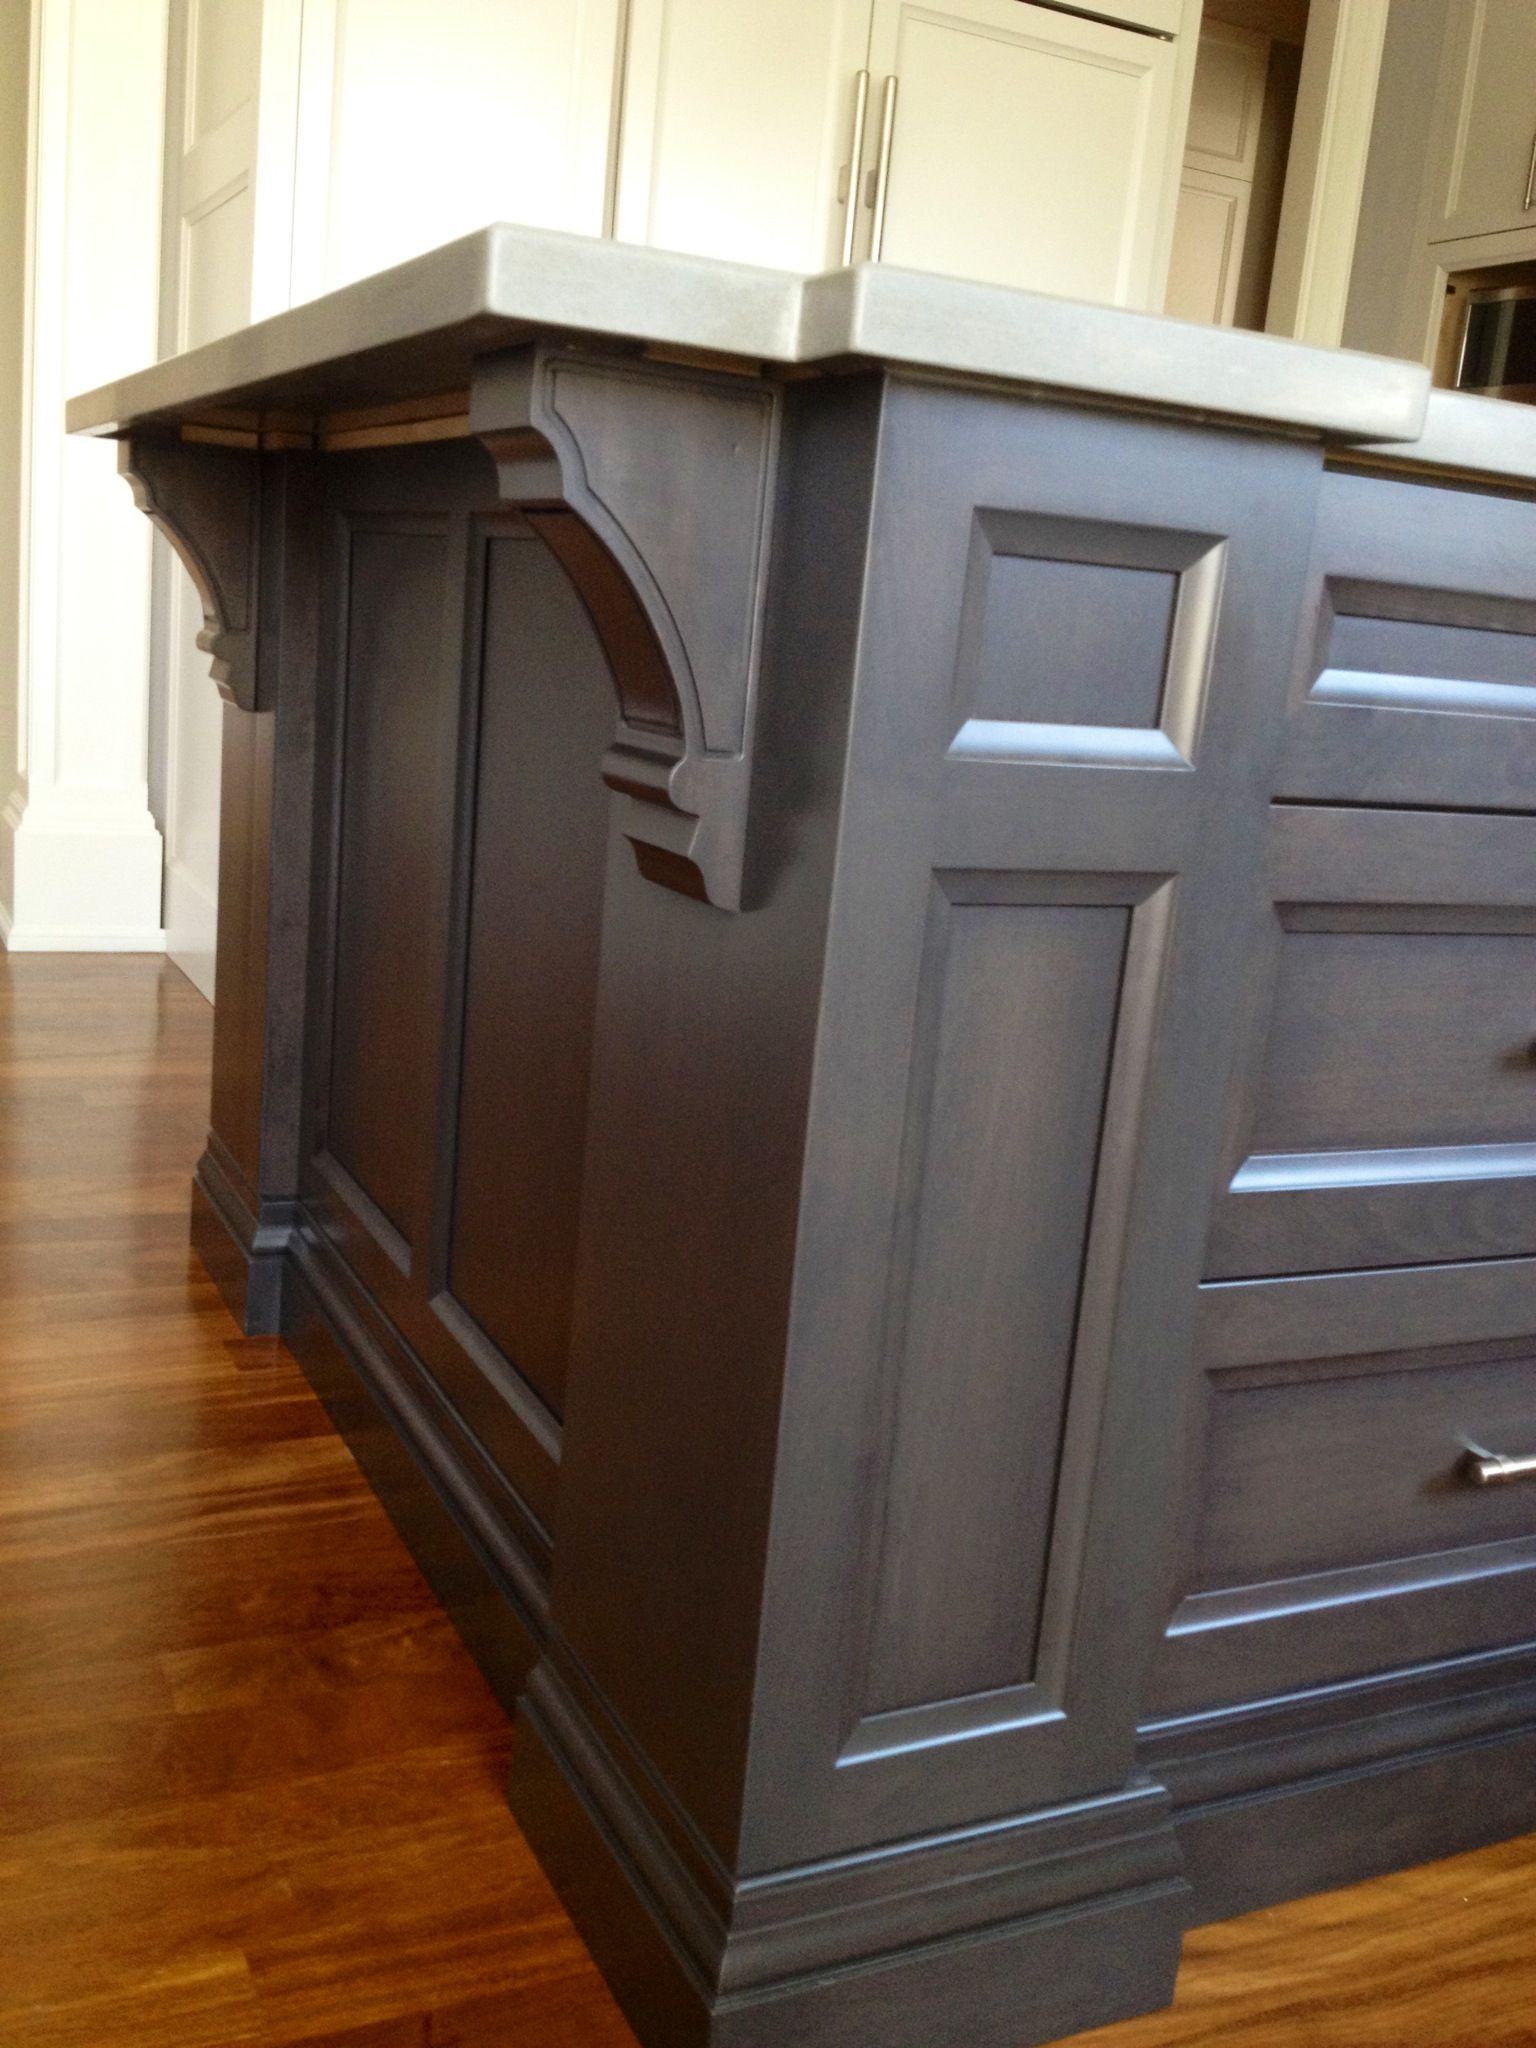 Option for the pass through into family room dark gray Newwood cupboards